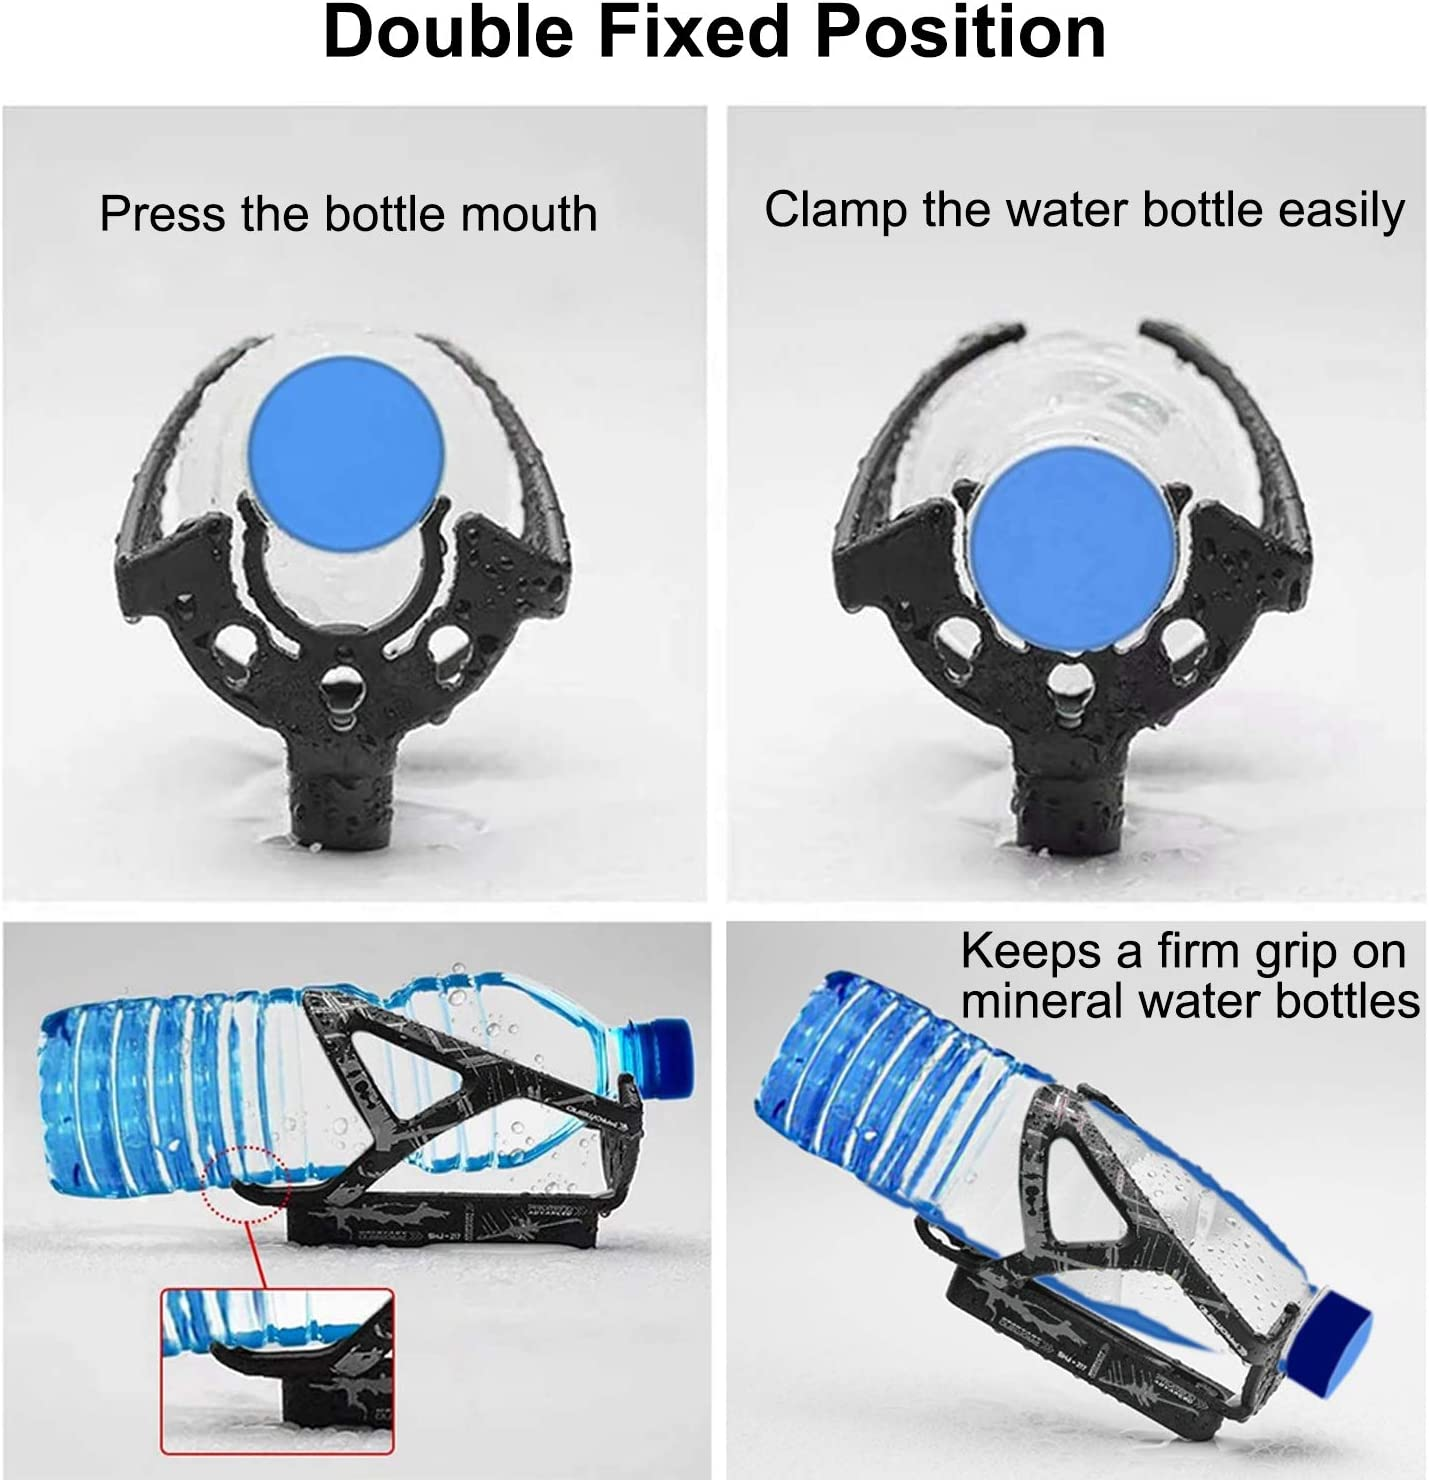 HONZUEN Mountain Bike Water Bottle Holder with Tire Lever Lightweight Water Bottle Cages for Road Bikes with Small Bottle Mouth Slot High Durability /& Flexibility Biking Bottle Cage